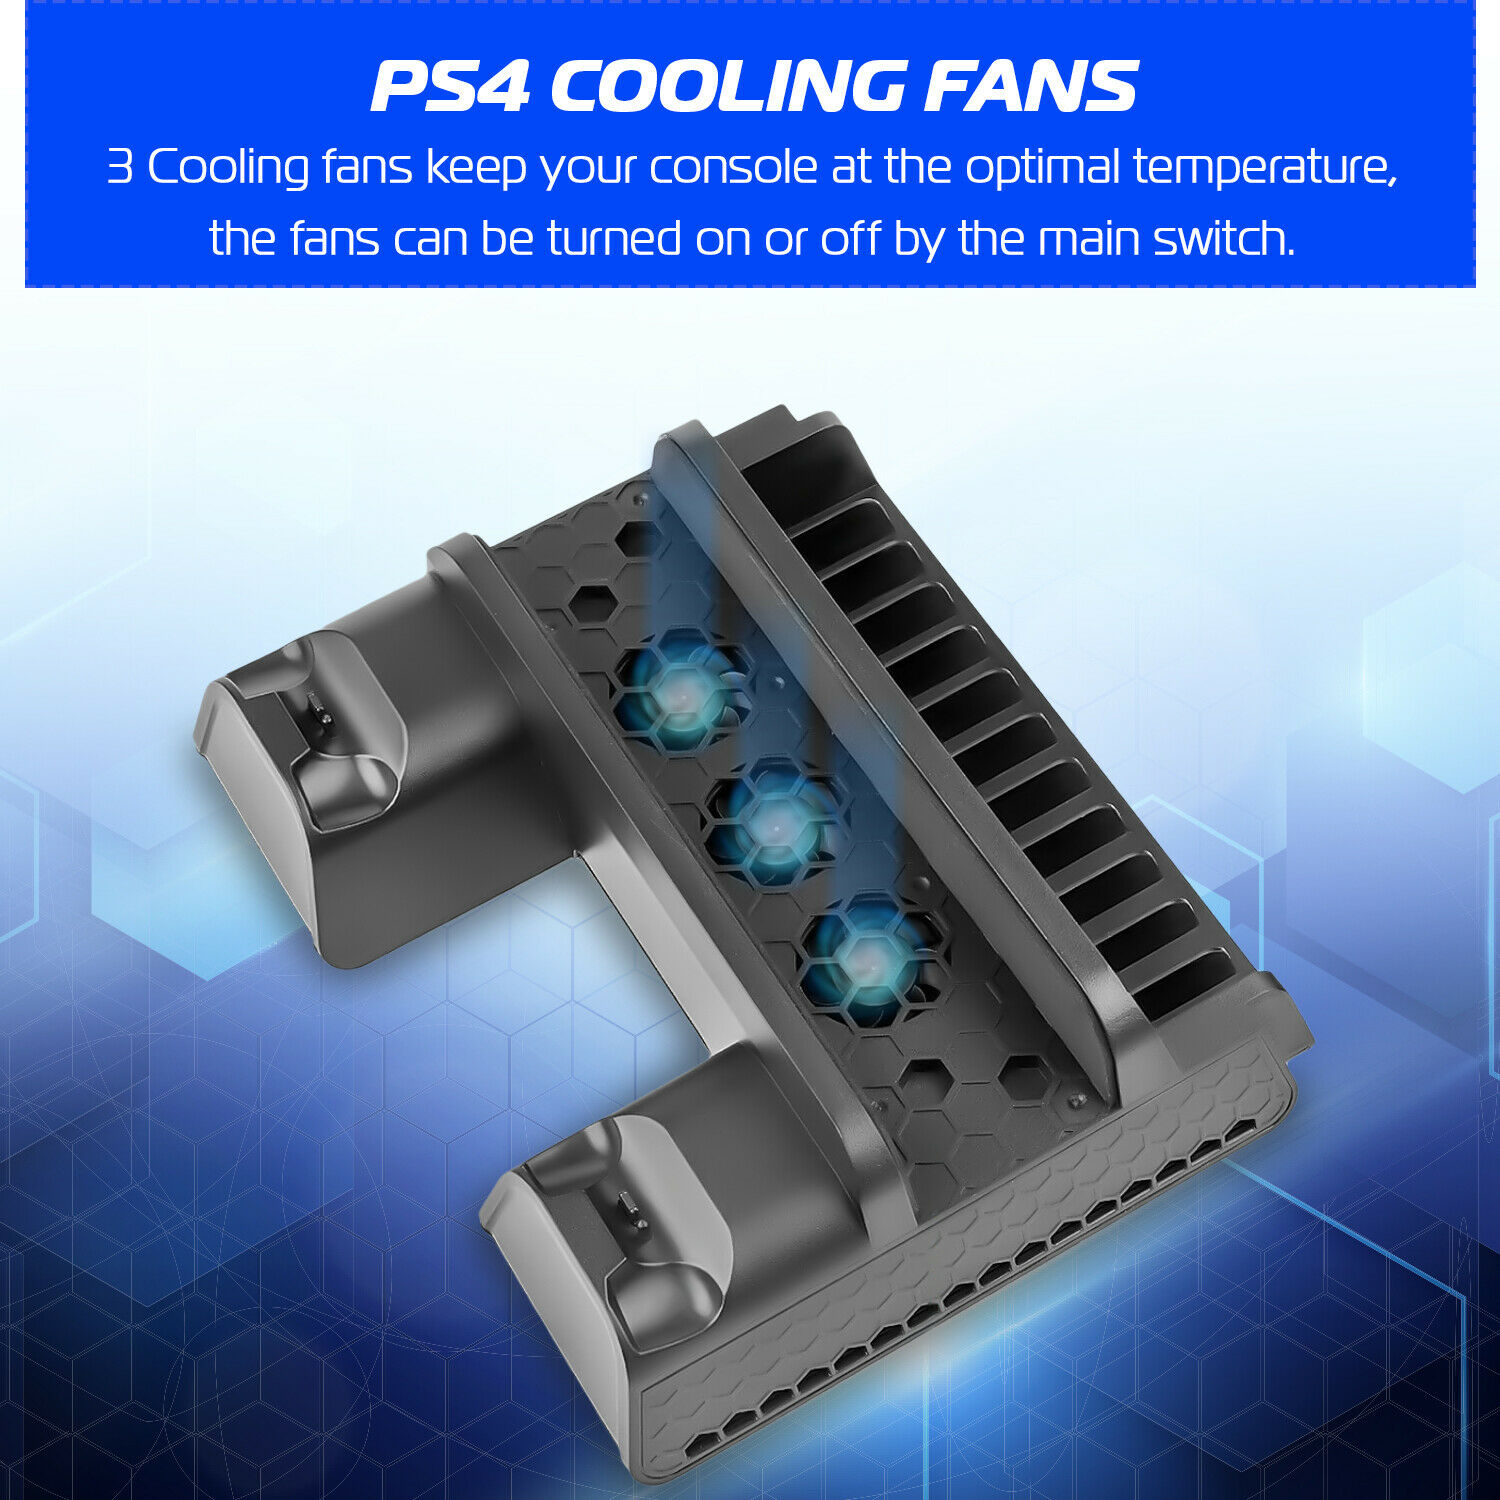 PS4 Cooling Stand Charging Dock & 12 Game Rack for PS4, PS4 Slim, PS4 Pro